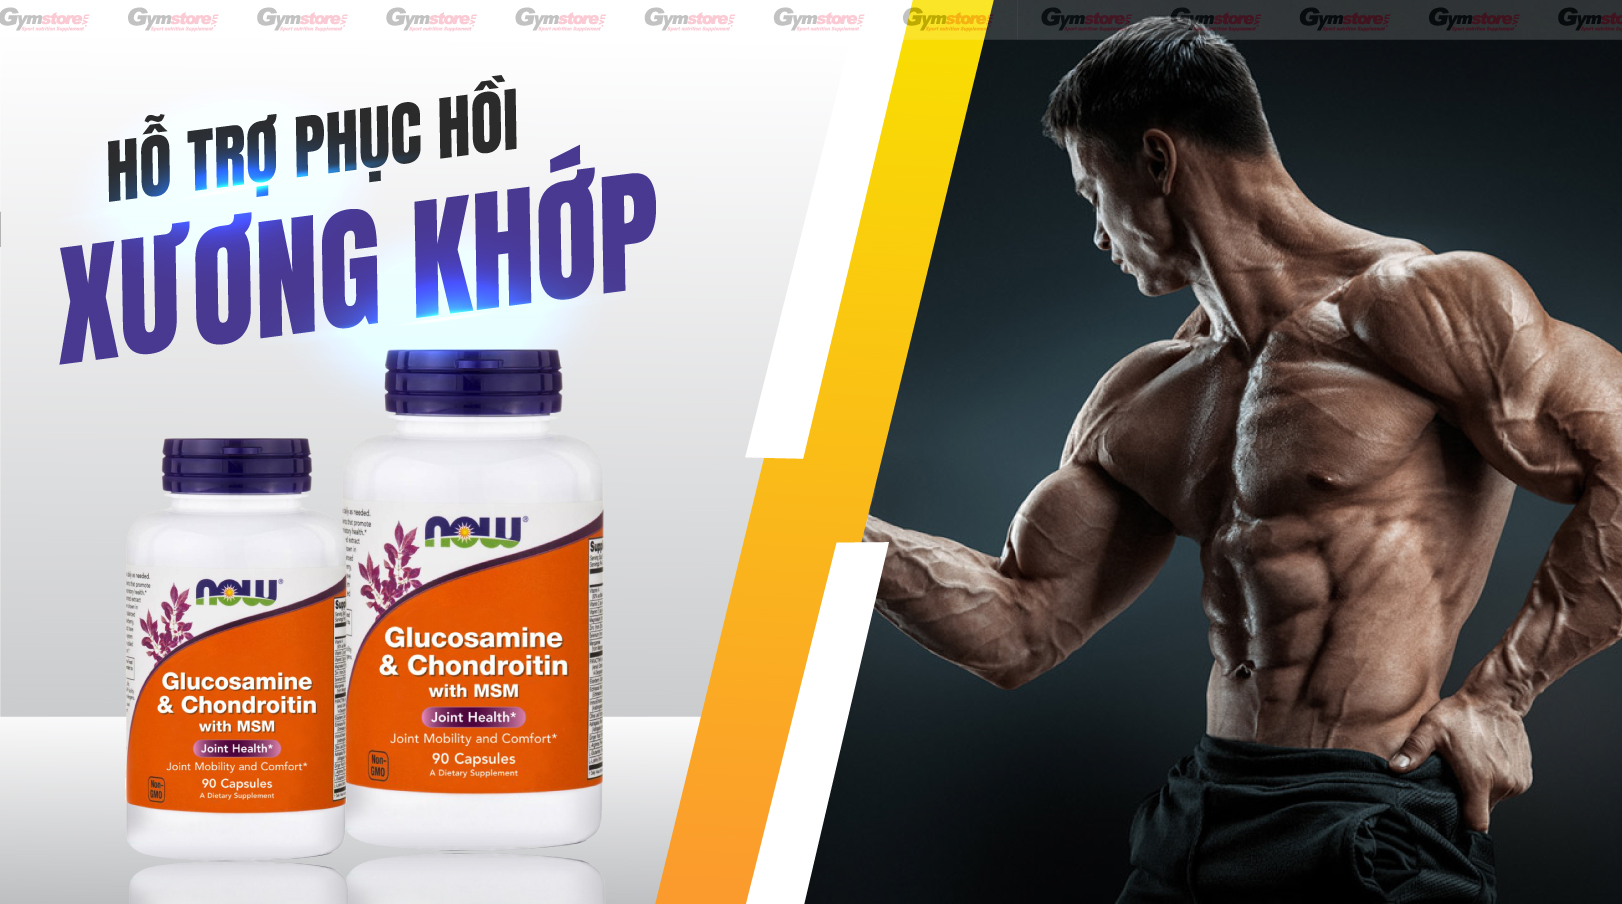 NOW-Glucosamine-Chondroitin-with-MSM-hỗ-trợ-xương-khớp-gymstore